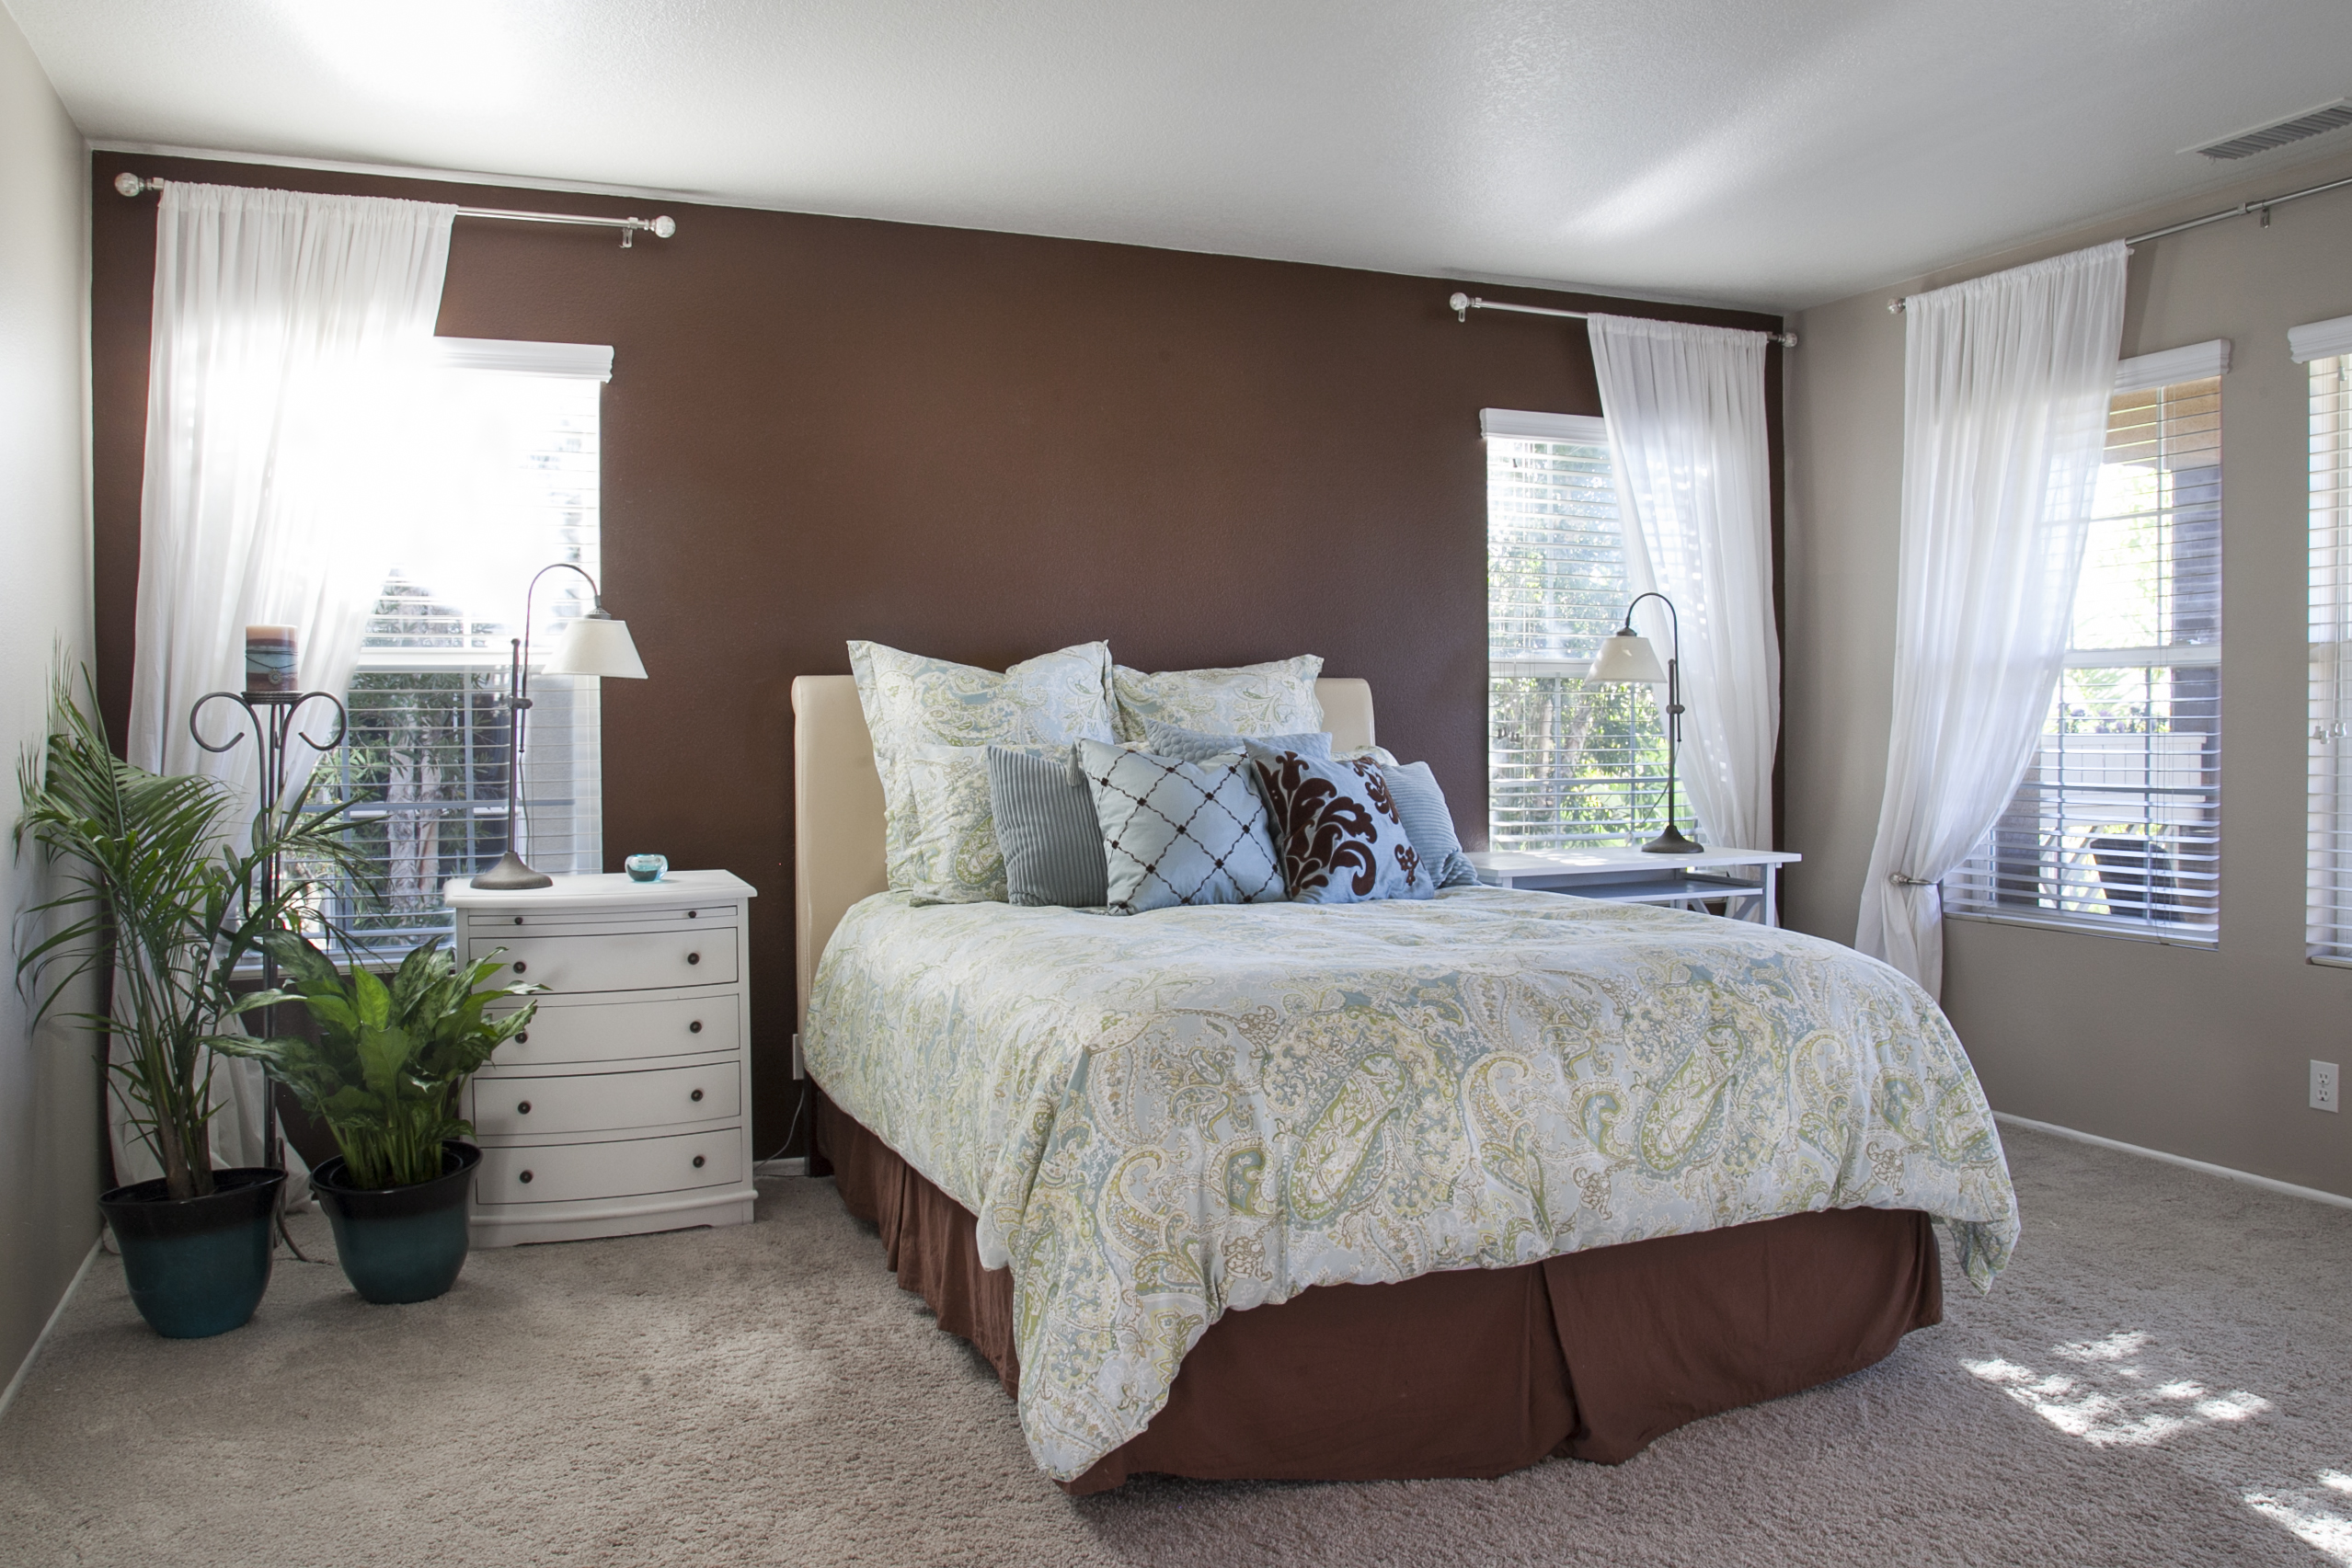 Painting Bedroom Walls Different Colors Marvelous Two Different Colored Walls Bedroom 10 How To Paint